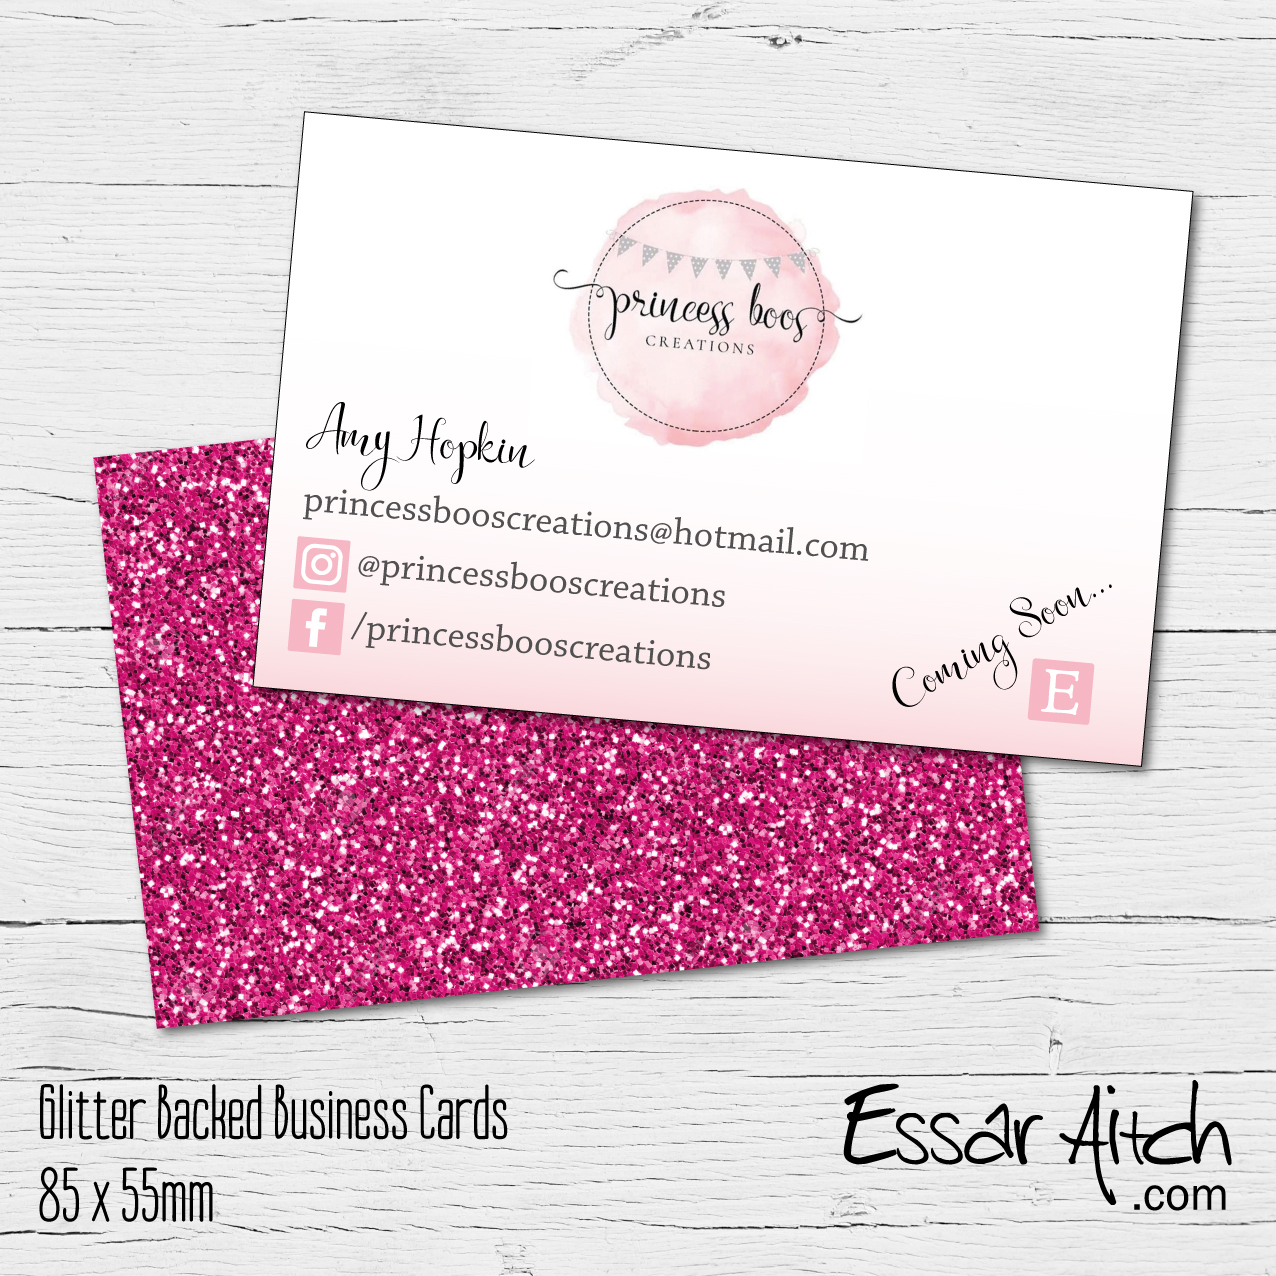 Glitter Backed Business Cards – Essar Aitch